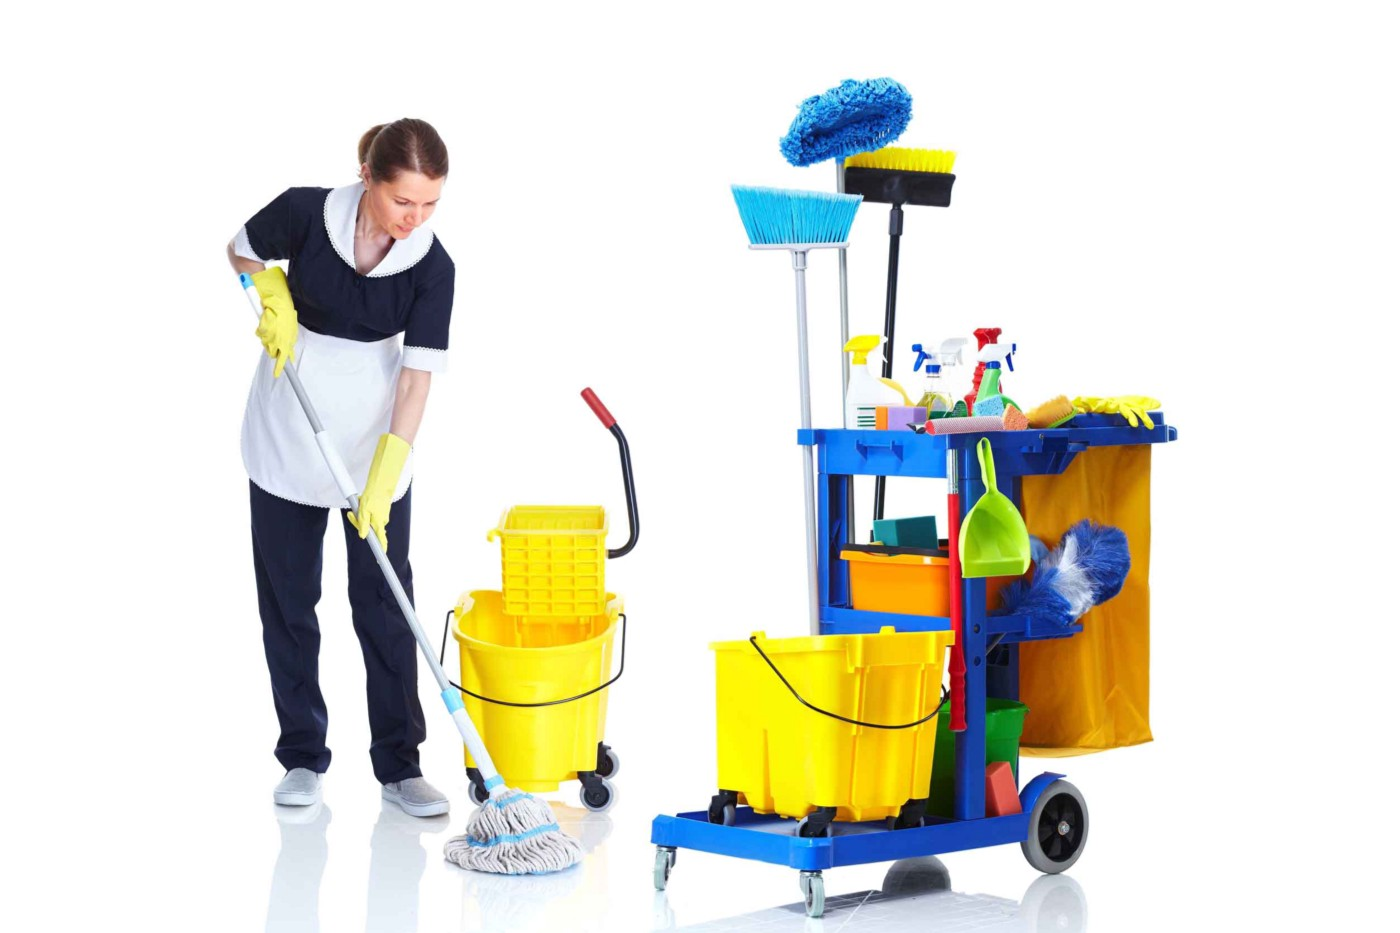 how to open a cleaning company licence in Dubai